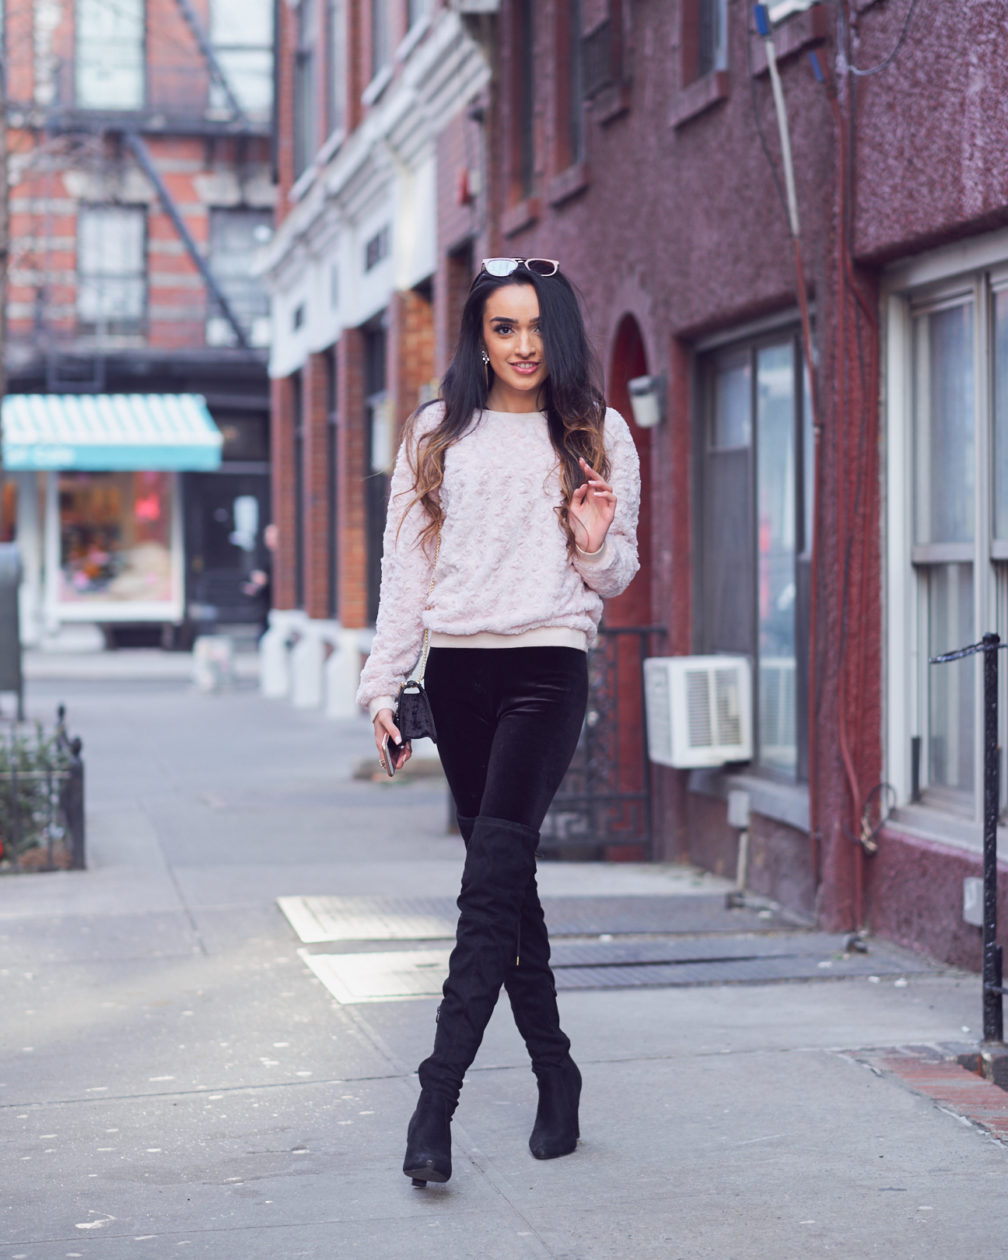 Fuji X Pro2 with xf 56mm f1.2 - Portrait Lifestyle Fashion Photography with Ramsha at Sweet Time Dessert Cafe in New York City